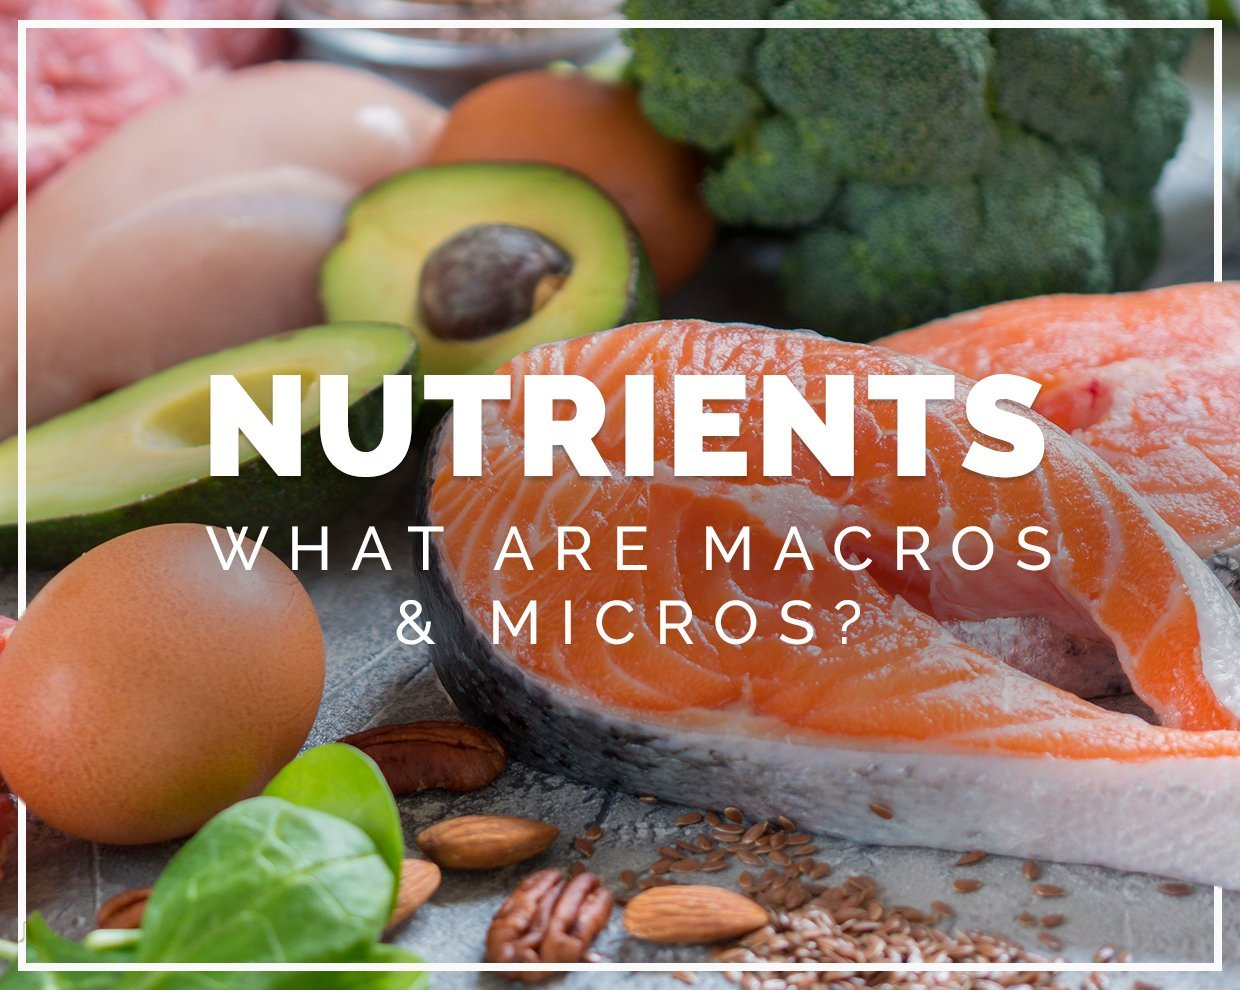 Nutrients: What are macros and micros?